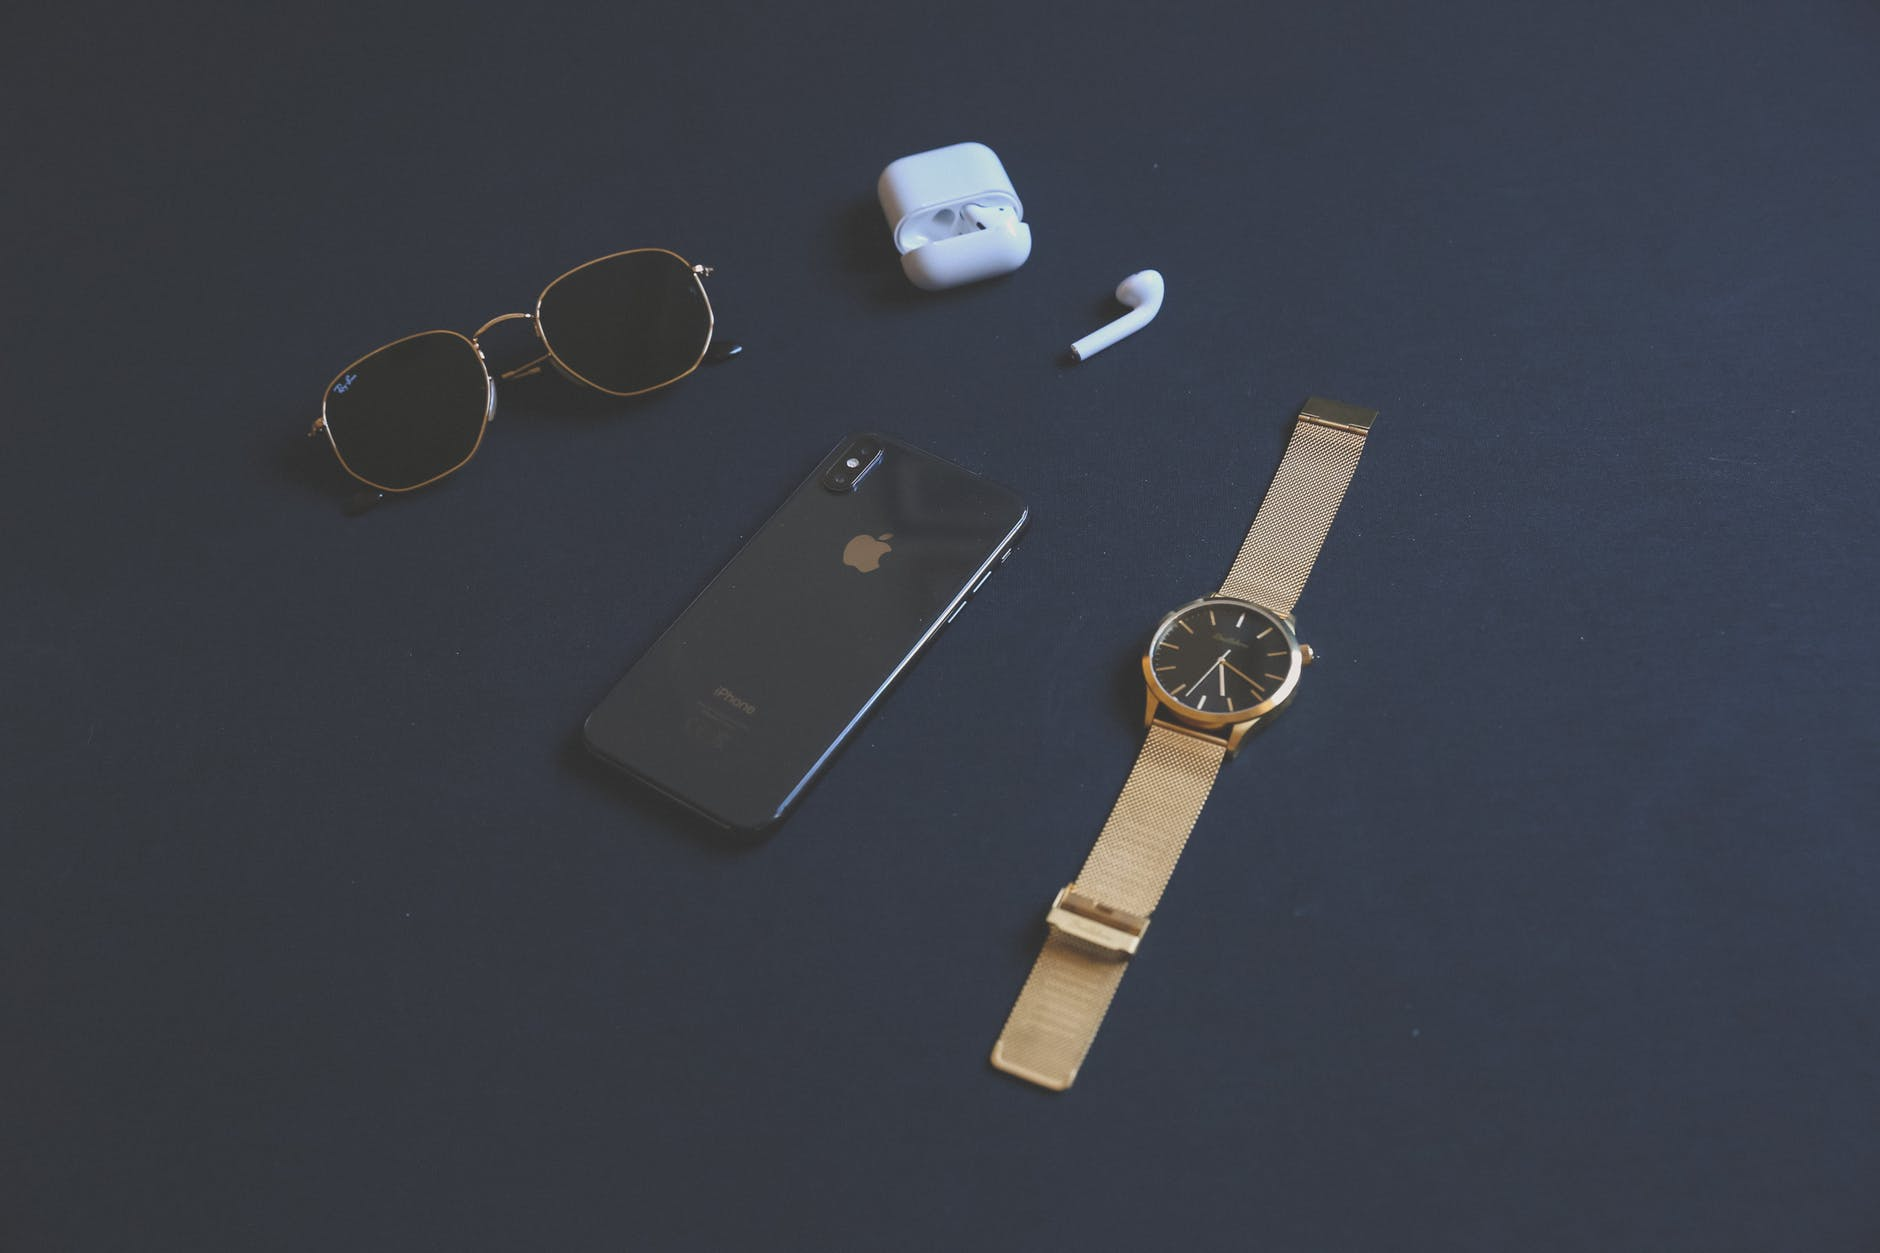 photo of iphone near sunglasses and watch